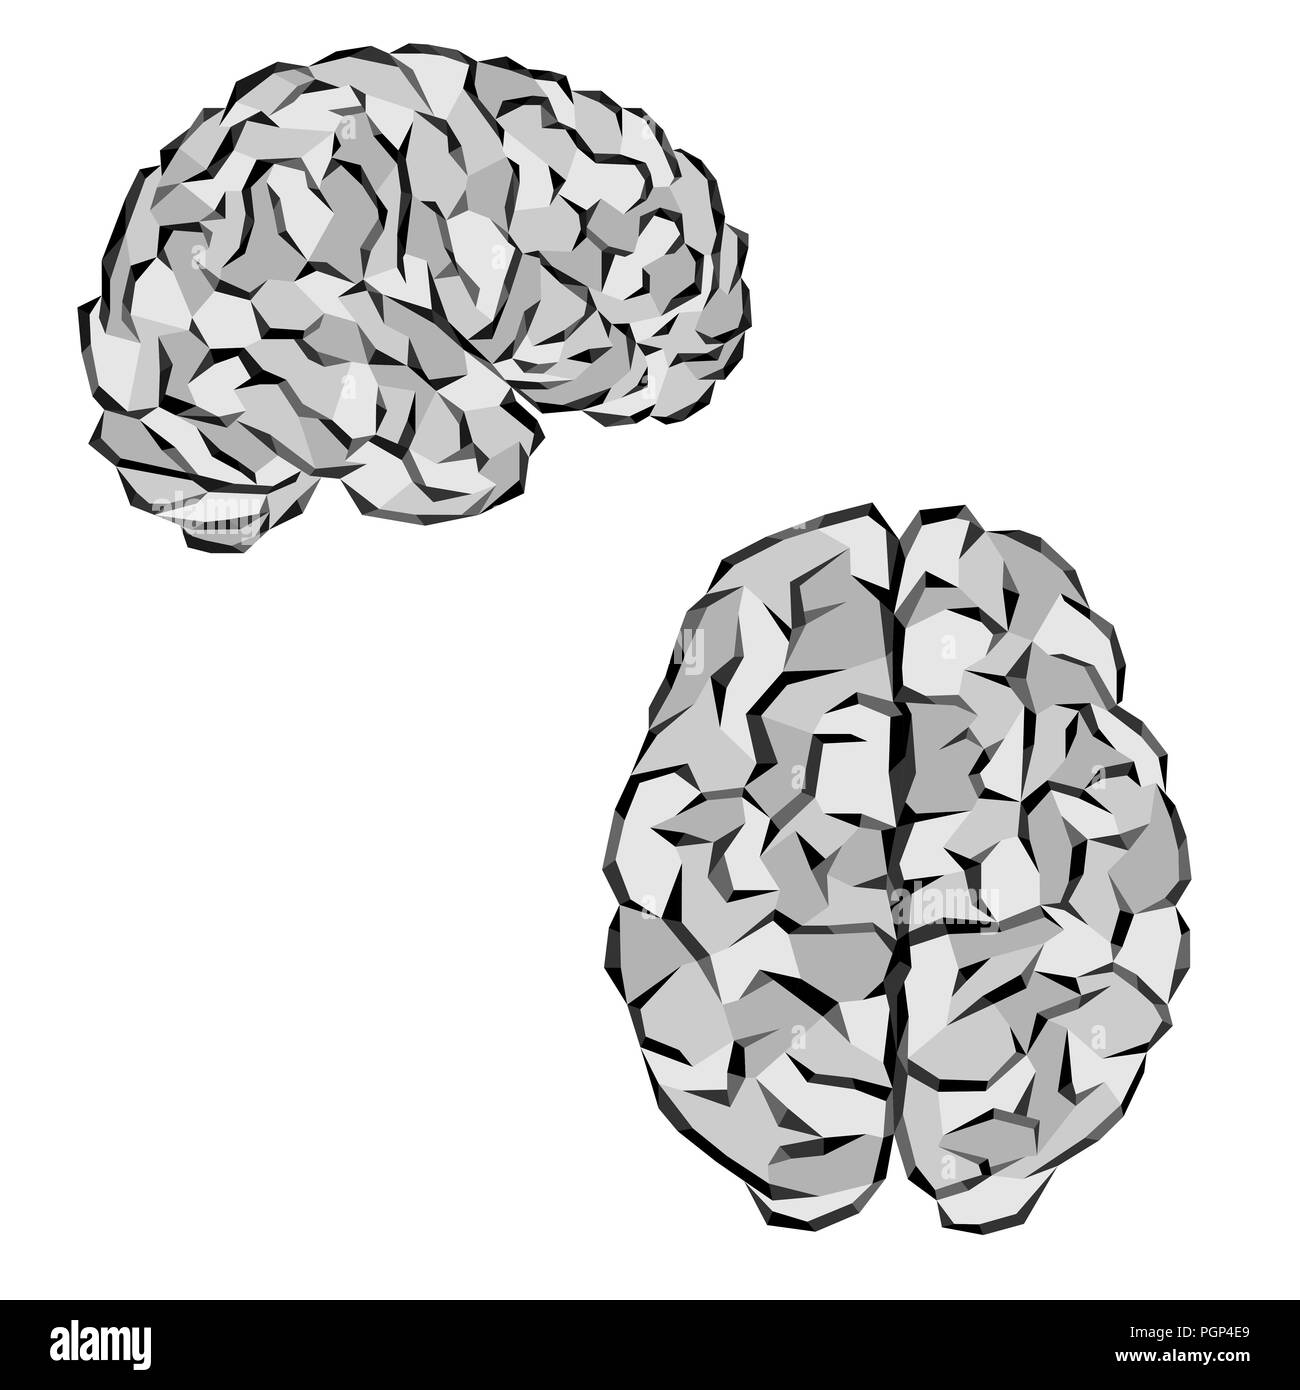 Human brain silhouettes with gray triangles elements - Stock Image